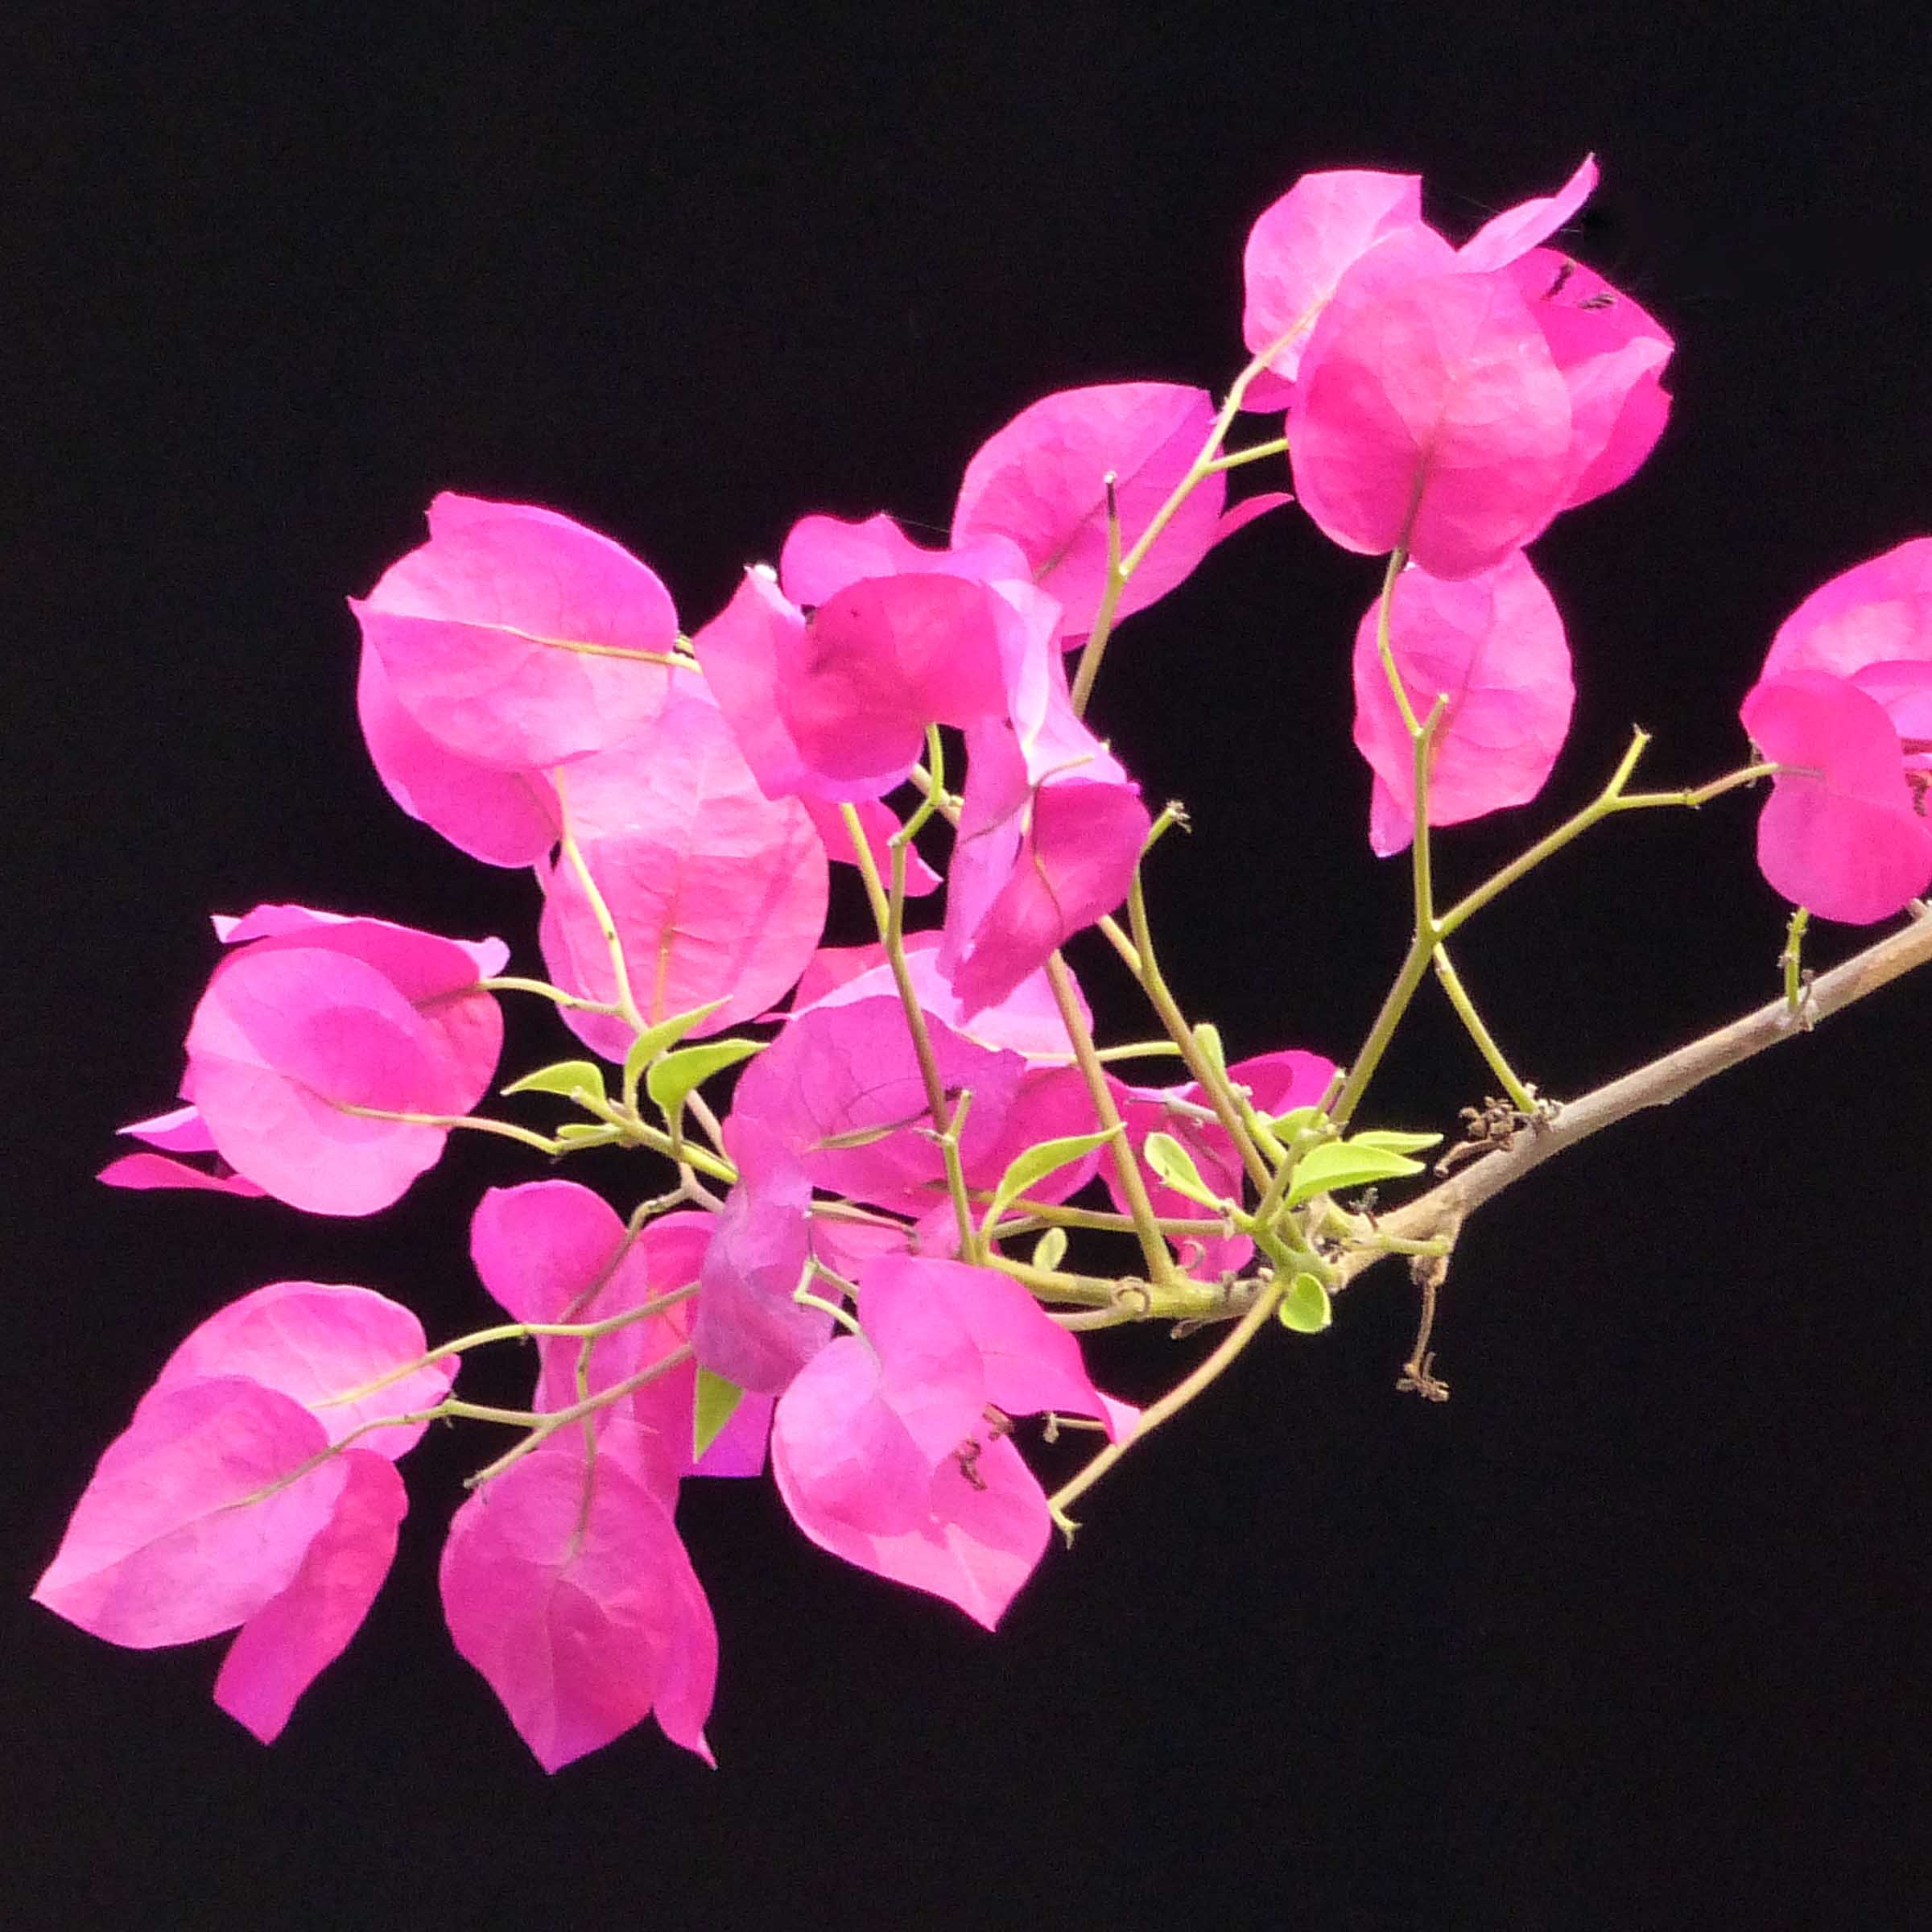 Pink flowers against black background